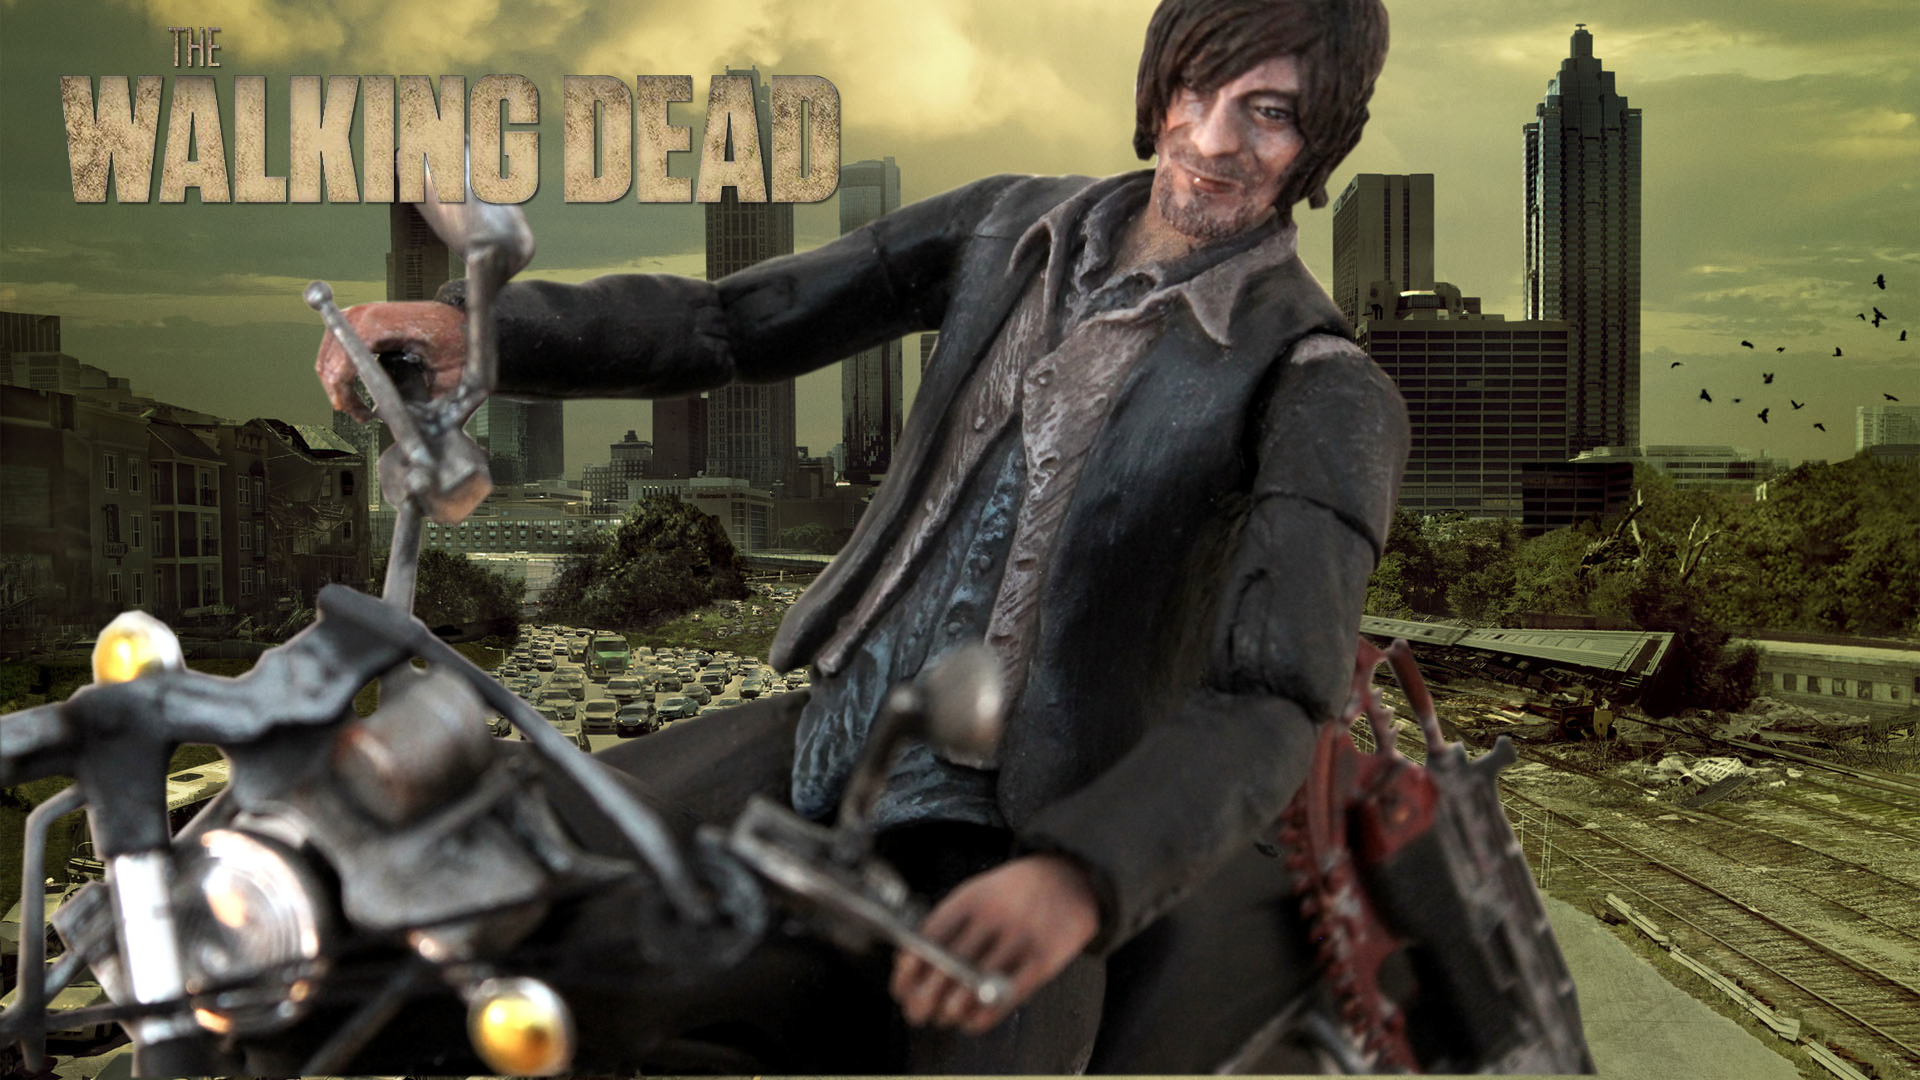 the walking dead � daryl dixon with motorcycle crossbow